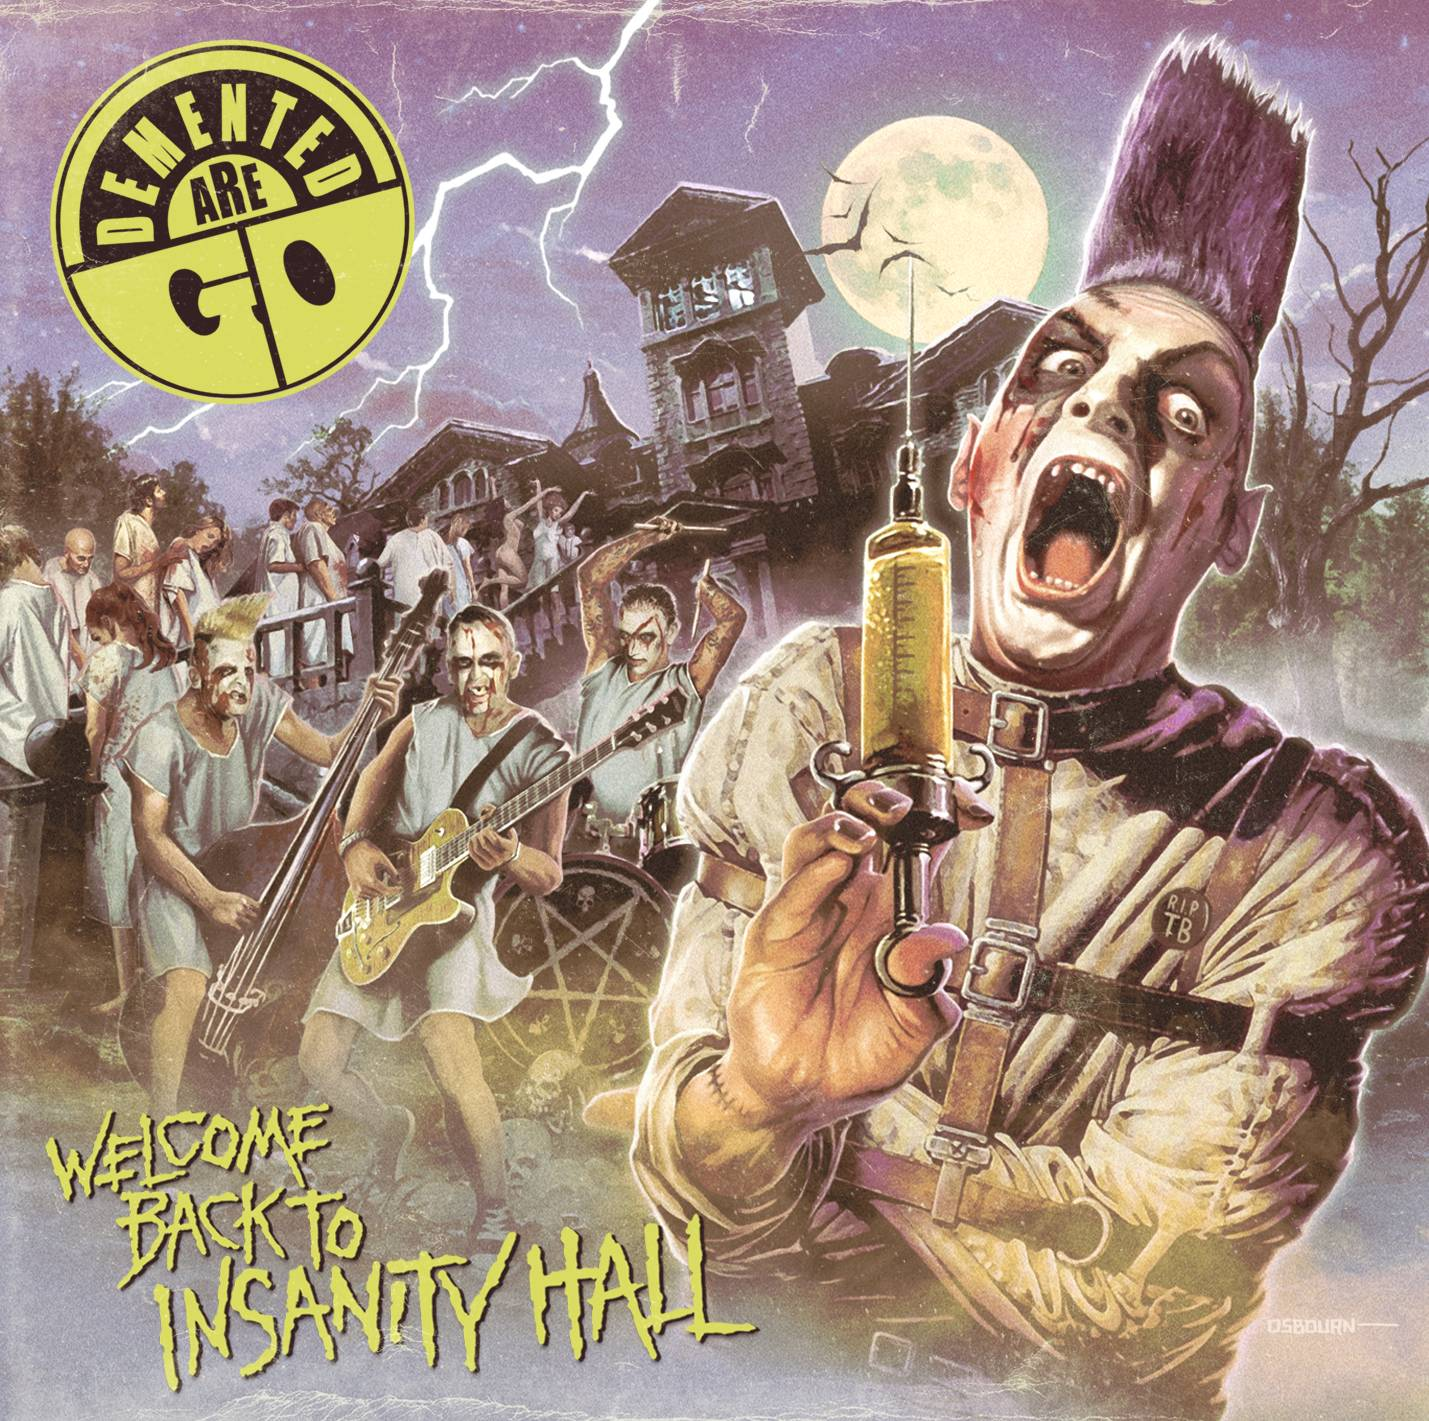 Review Demented Are Go Welcome Back To Insanity Hall